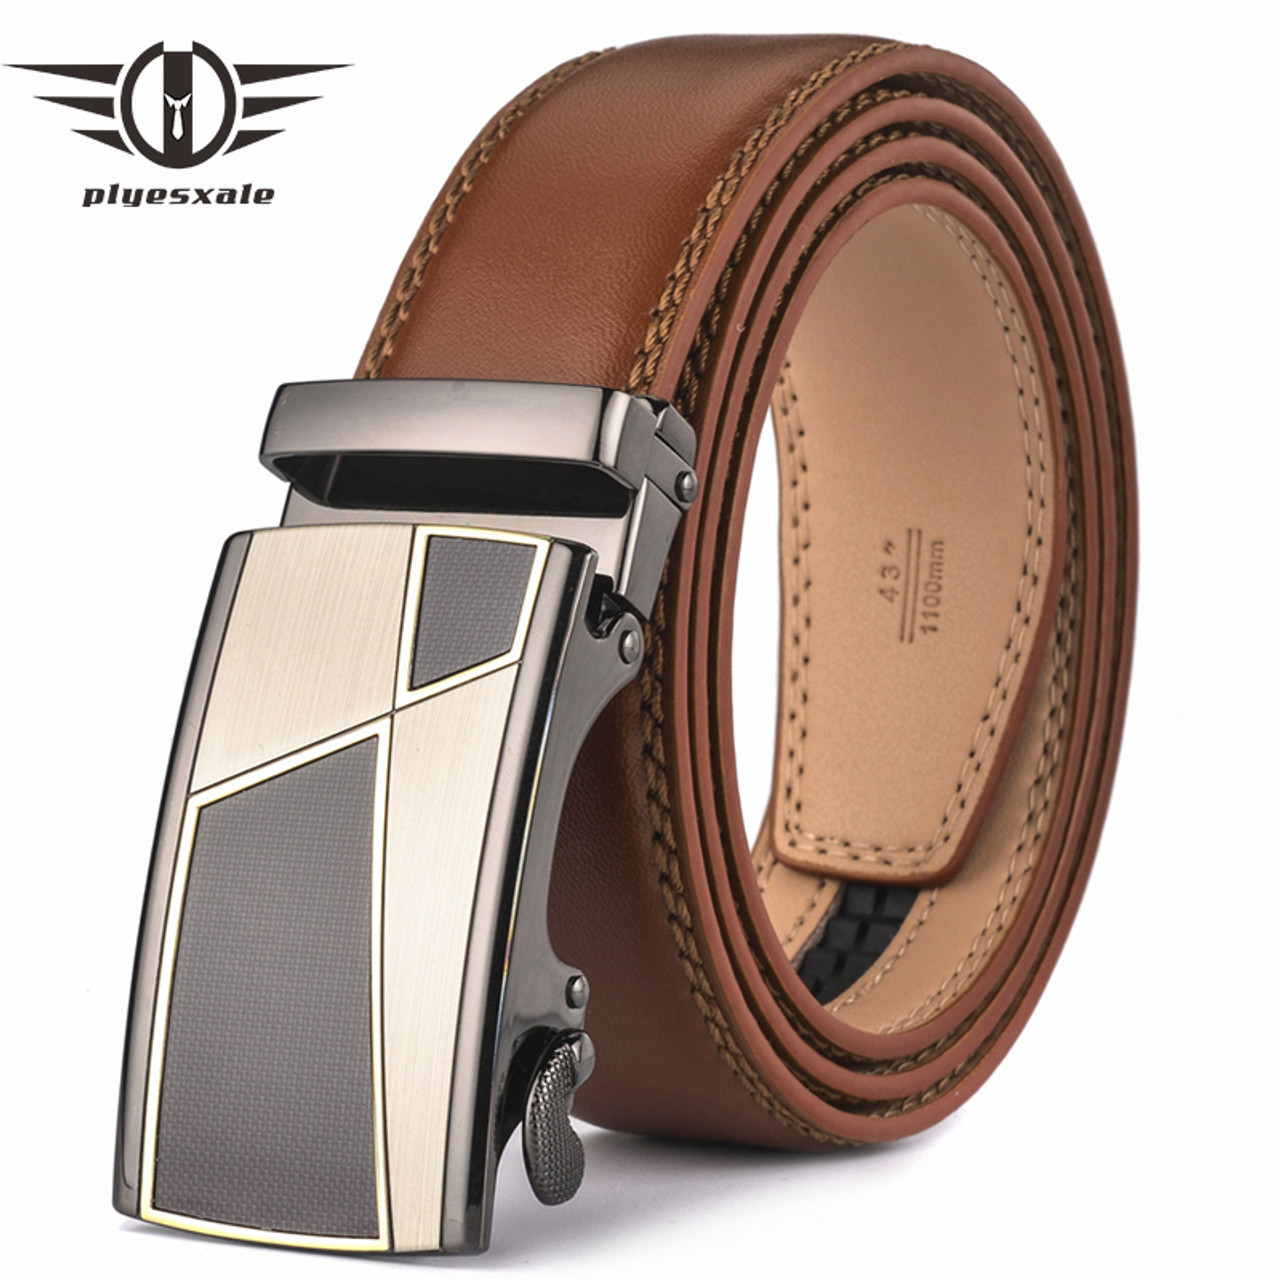 a61910f2d8bc4 Plyesxale Automatic Buckle Brown Belt Men 2018 Brand Designer Mens Belts  Luxury Genuine Leather Belt For ...